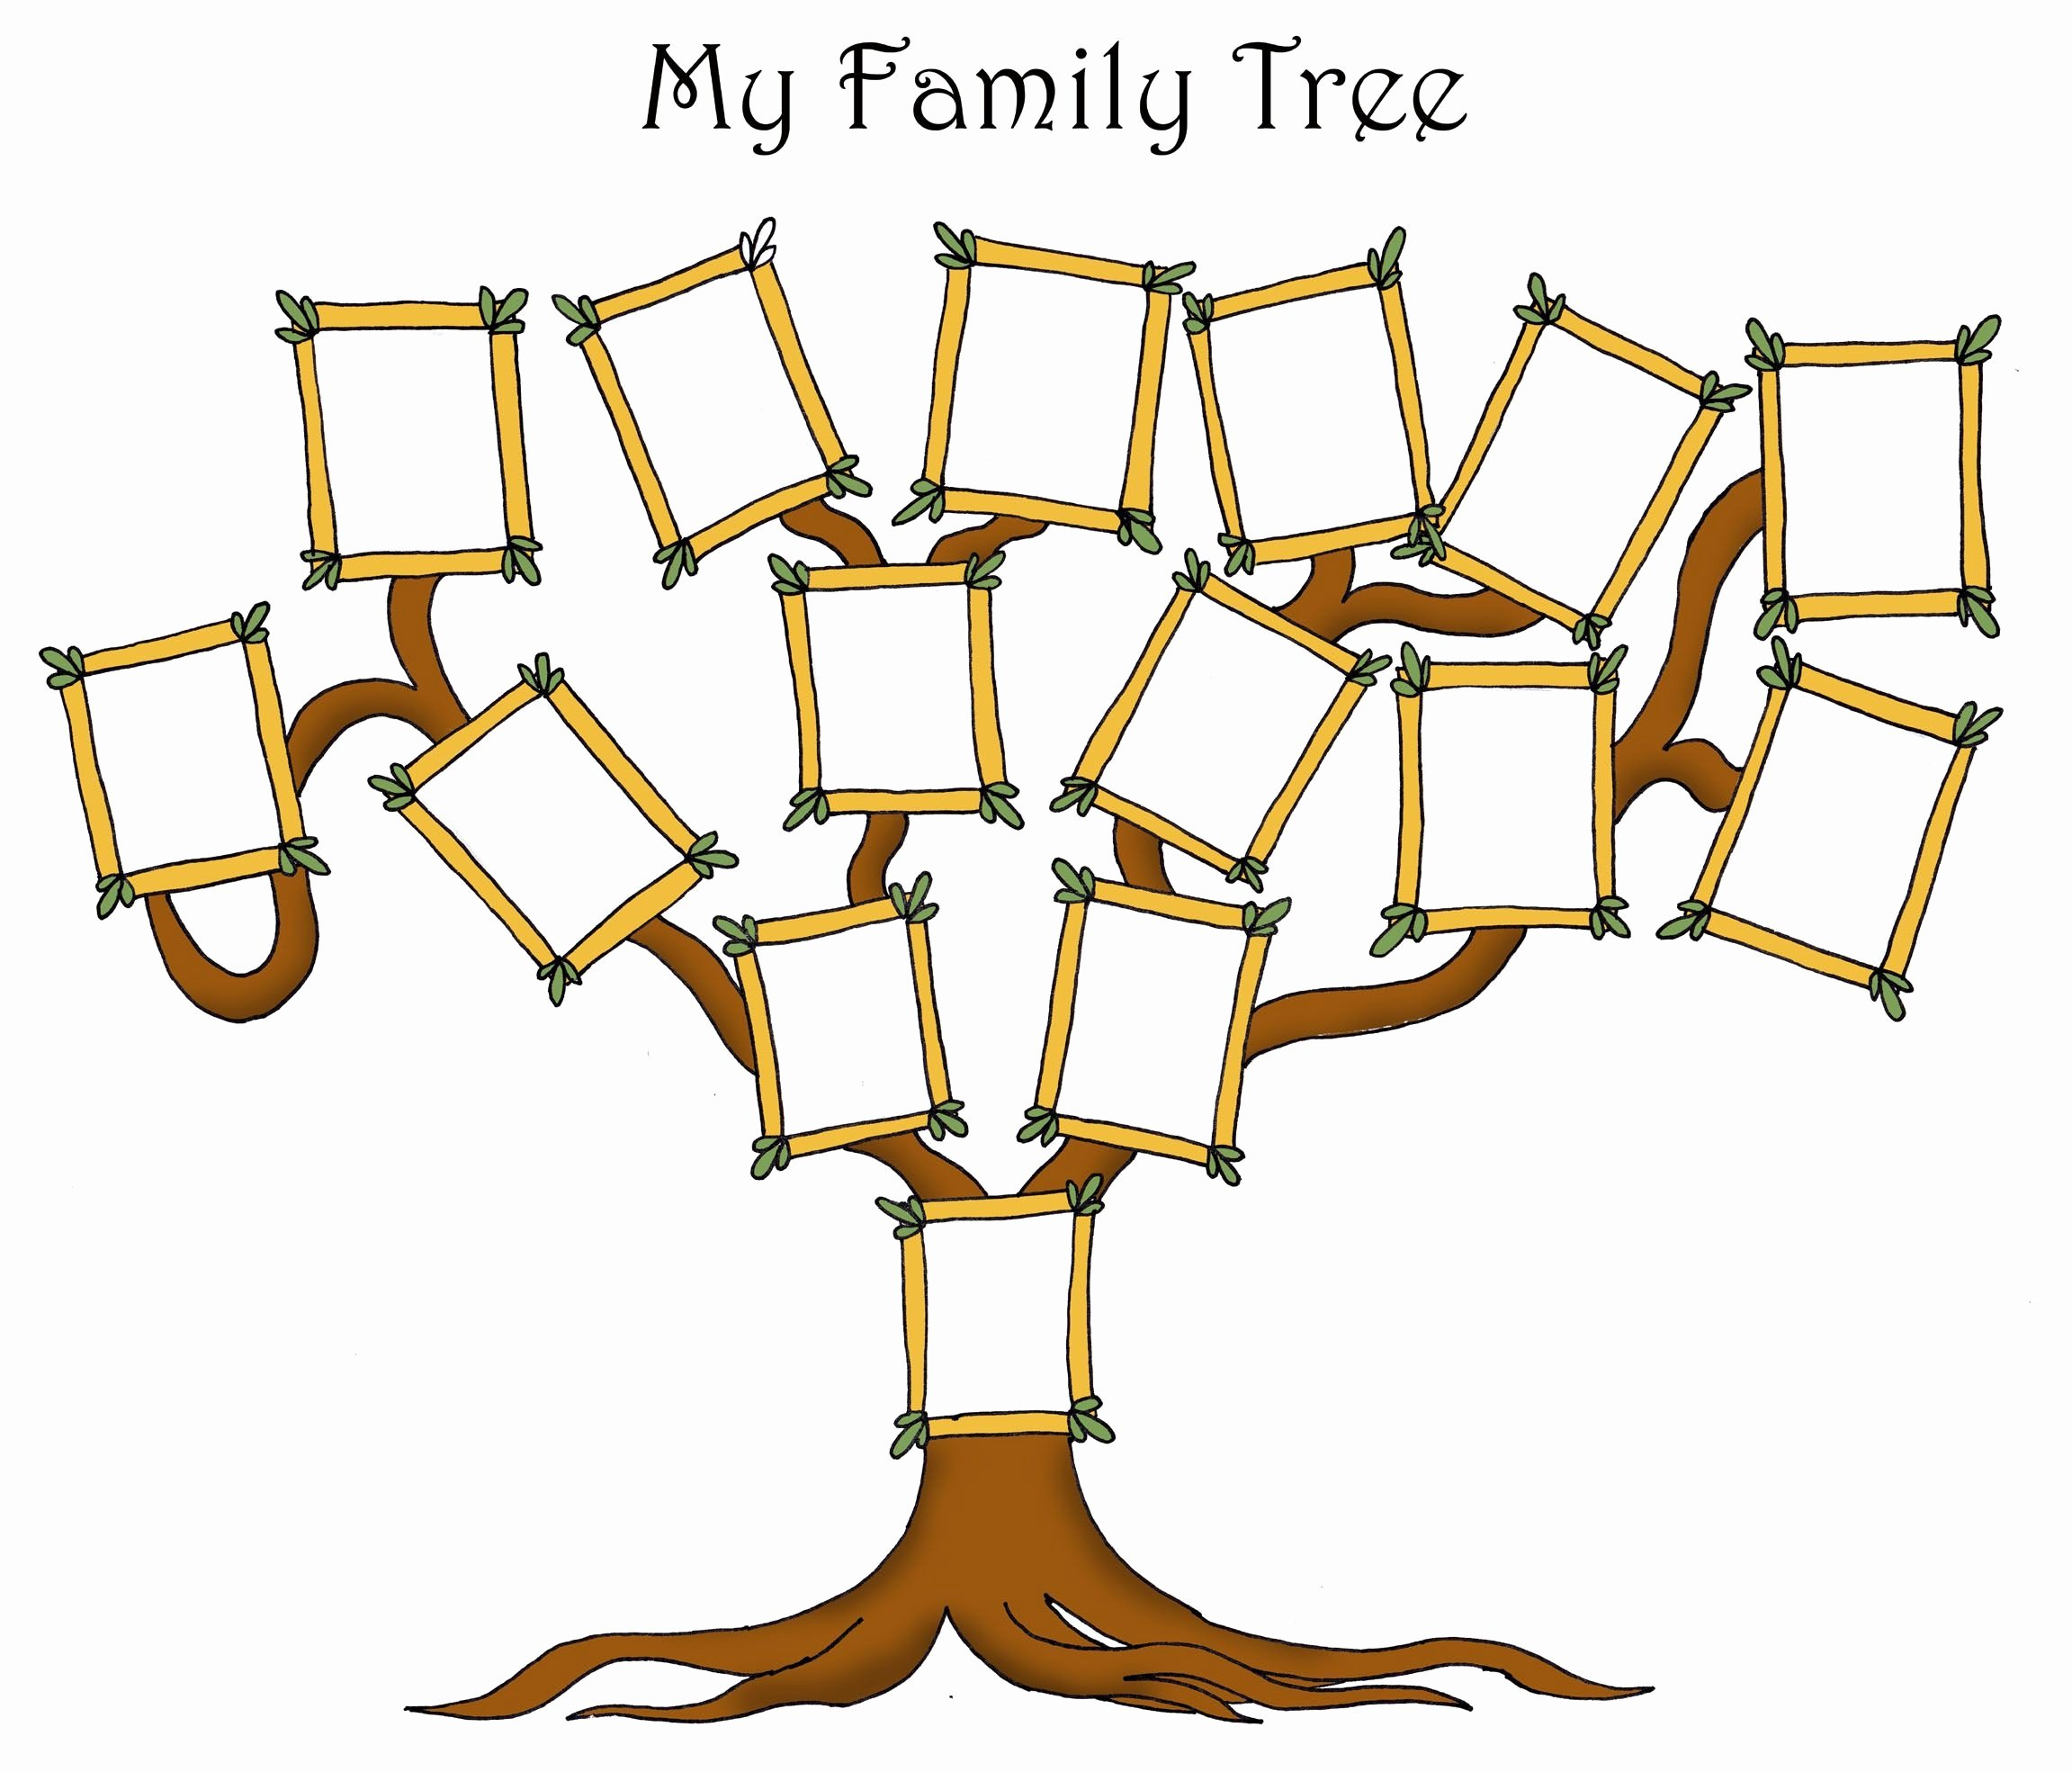 Free Family Tree Template Unique Free Editable Family Tree Template Daily Roabox